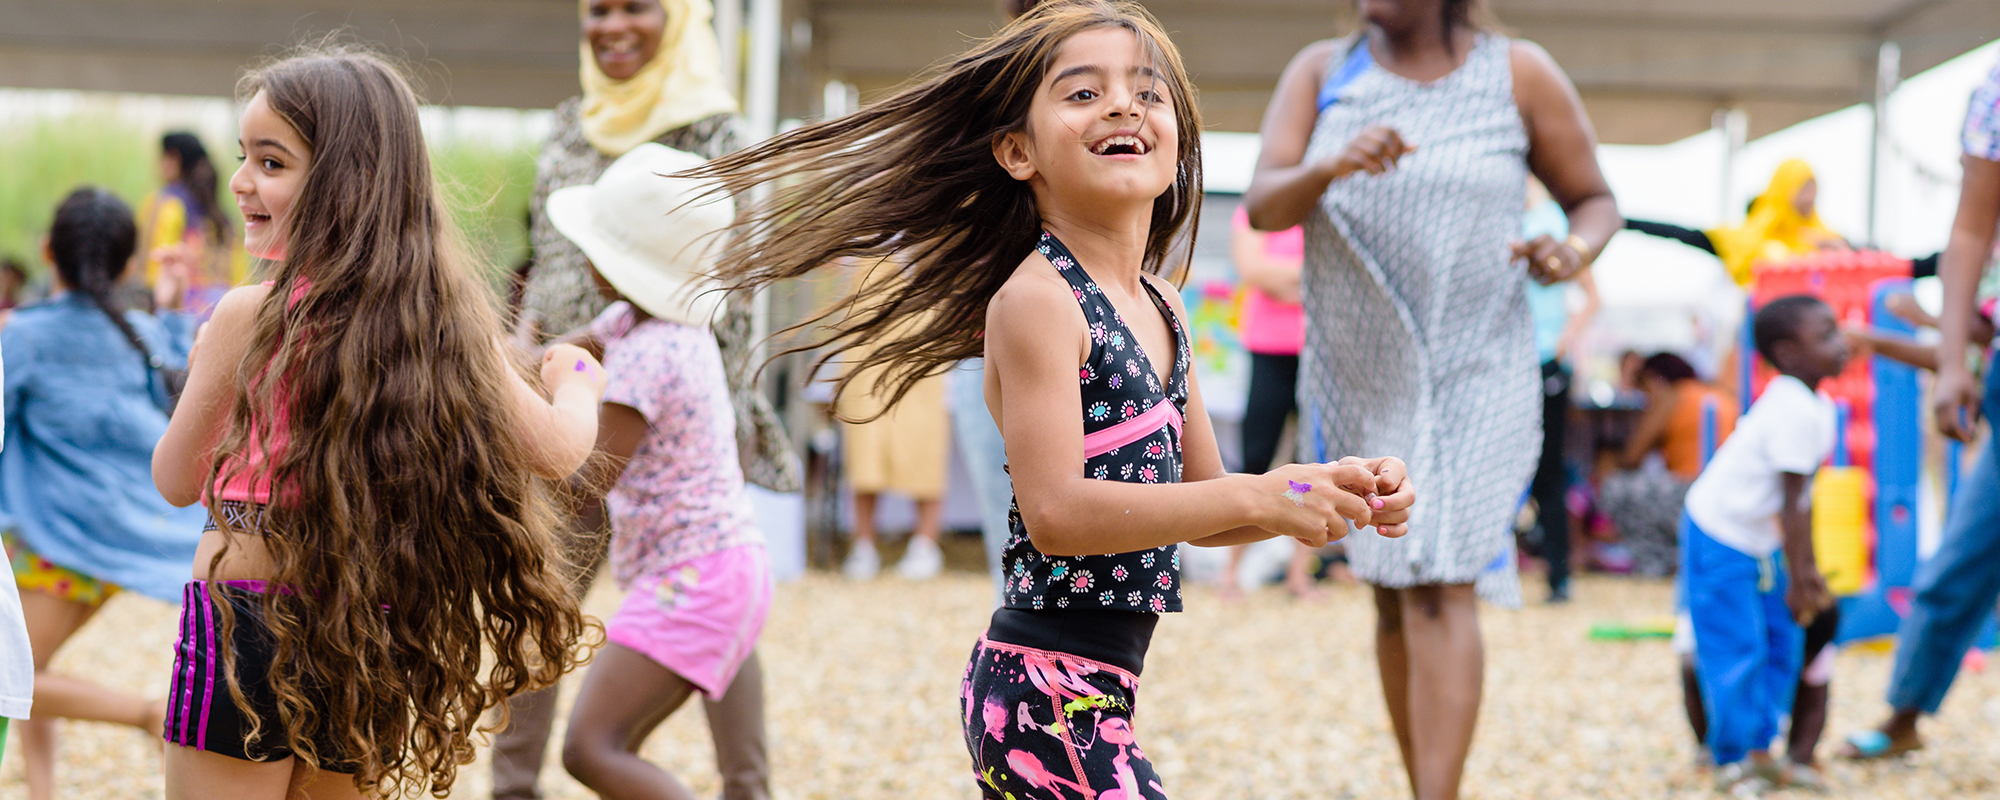 Nearness, wildness, secretiveness and possibility: developing the ideal space for play